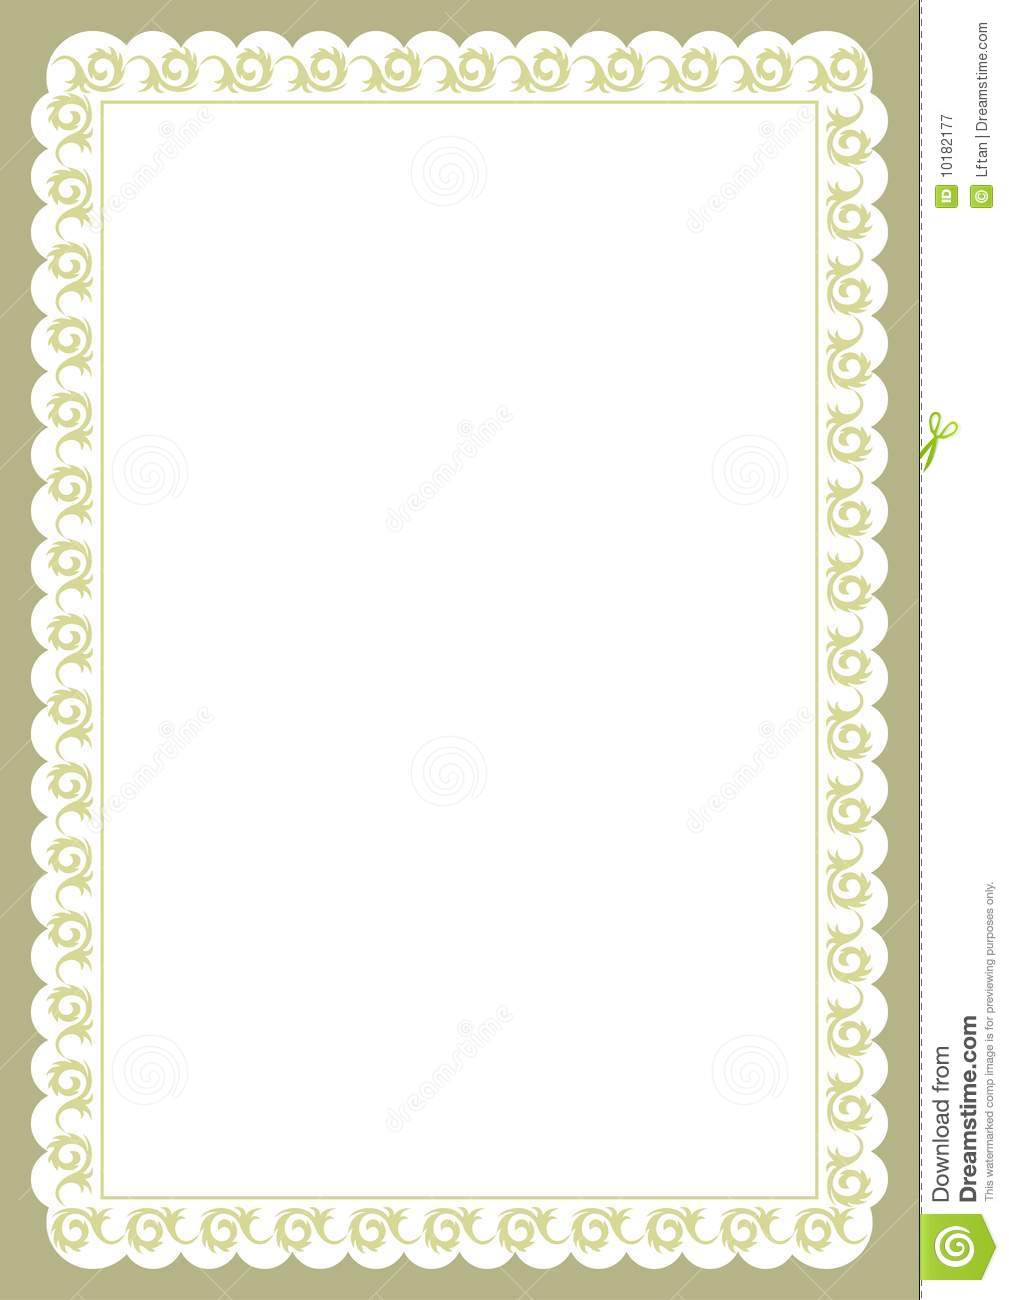 Certificate Border Royalty Free Stock Photography Image